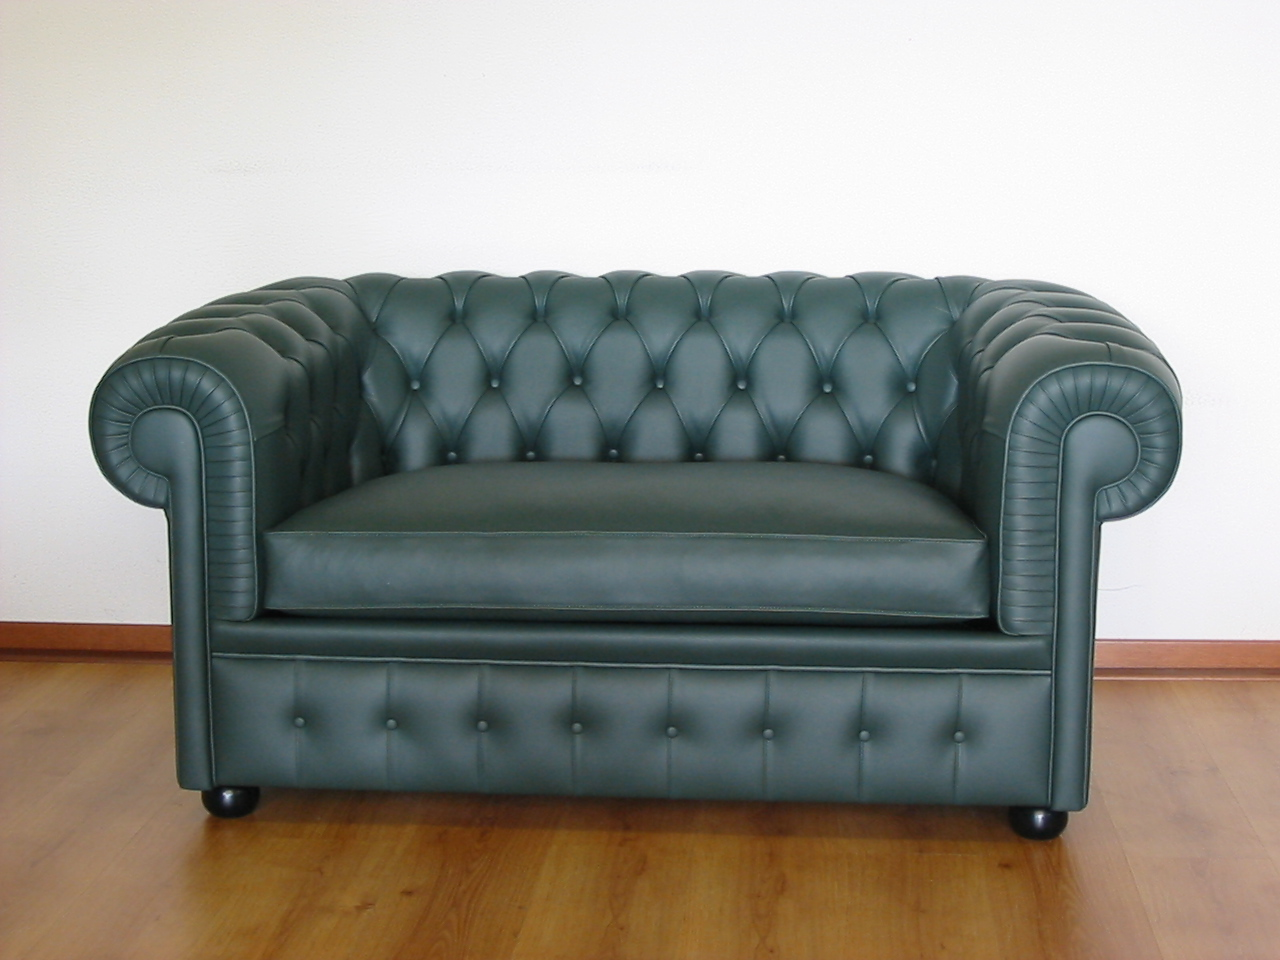 Casa immobiliare accessori divano letto chesterfield for Divano chesterfield